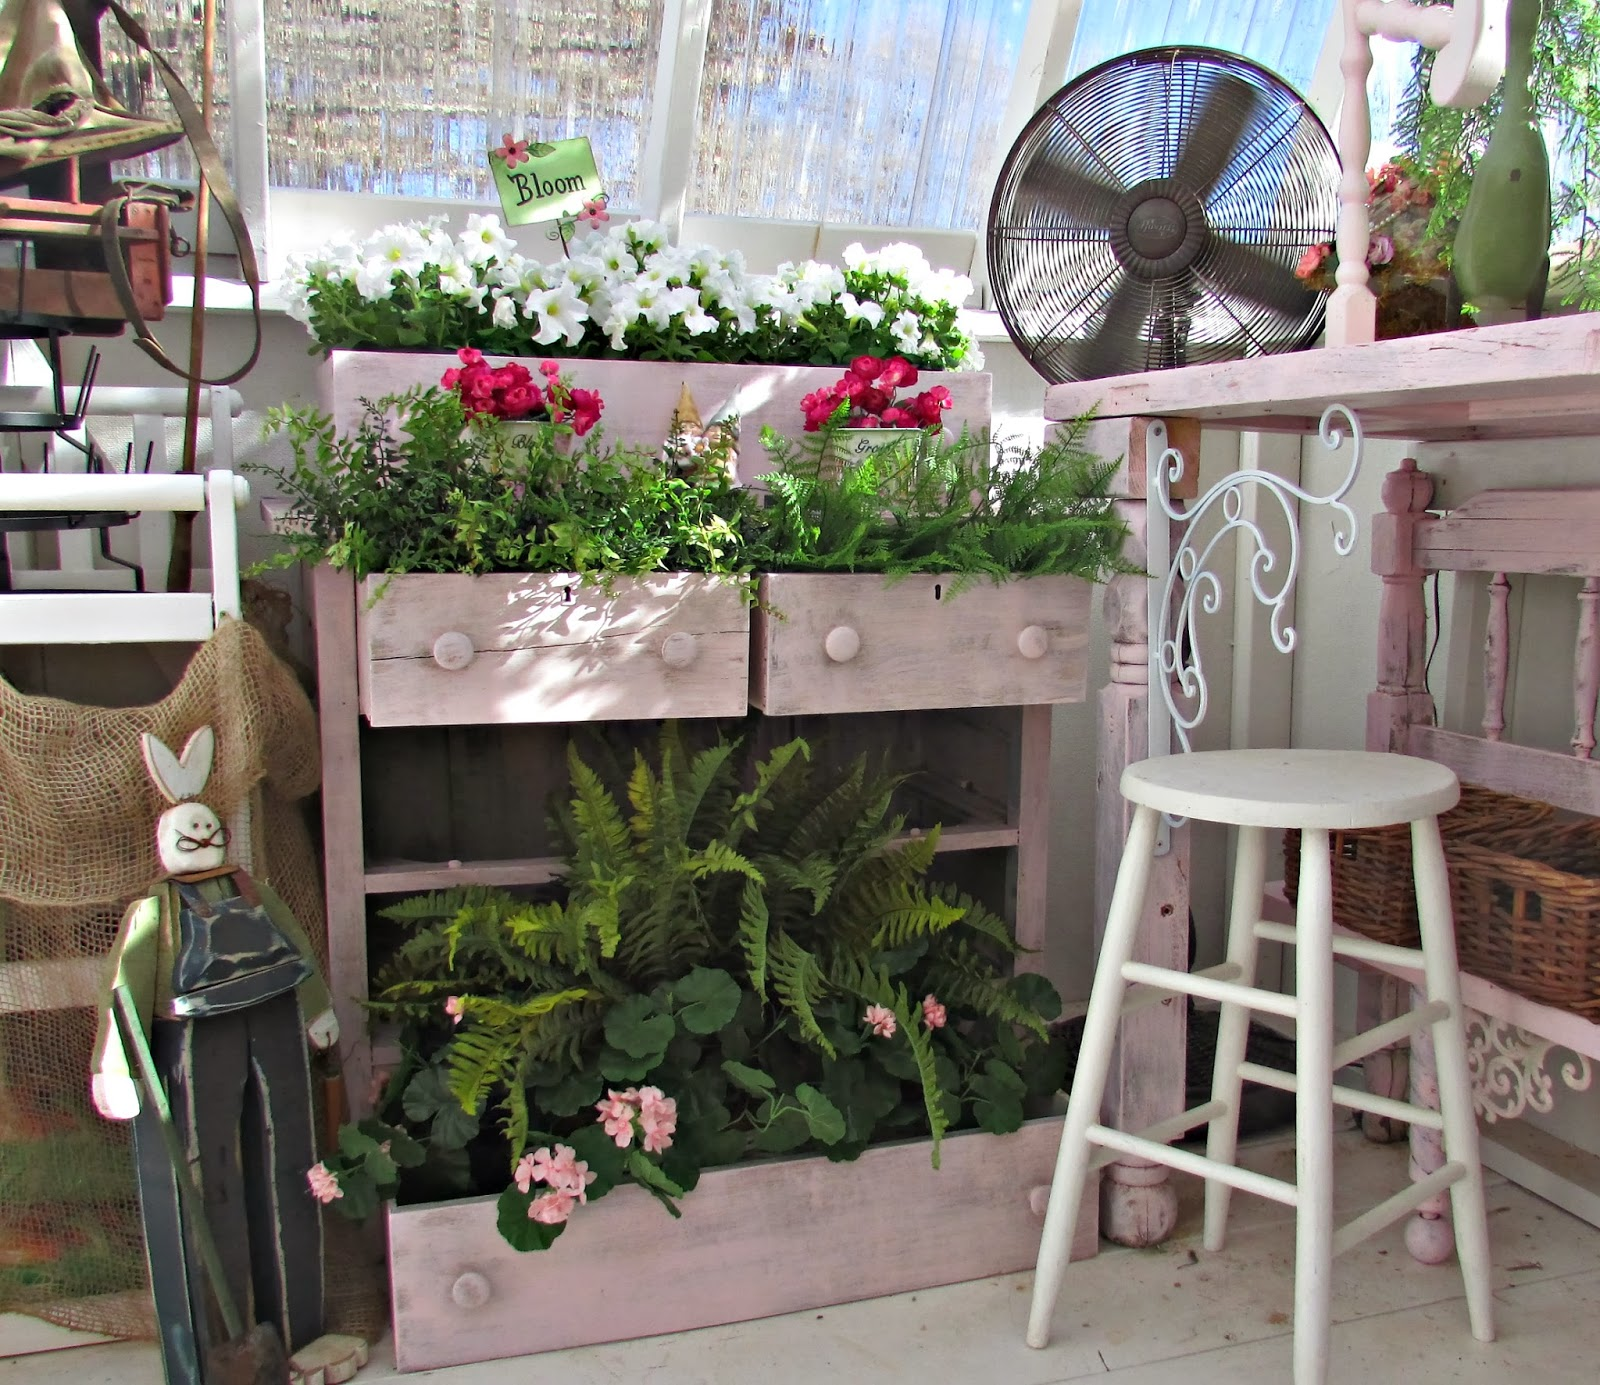 Repurposed chest of drawers in a potting shed - Penny Treasures